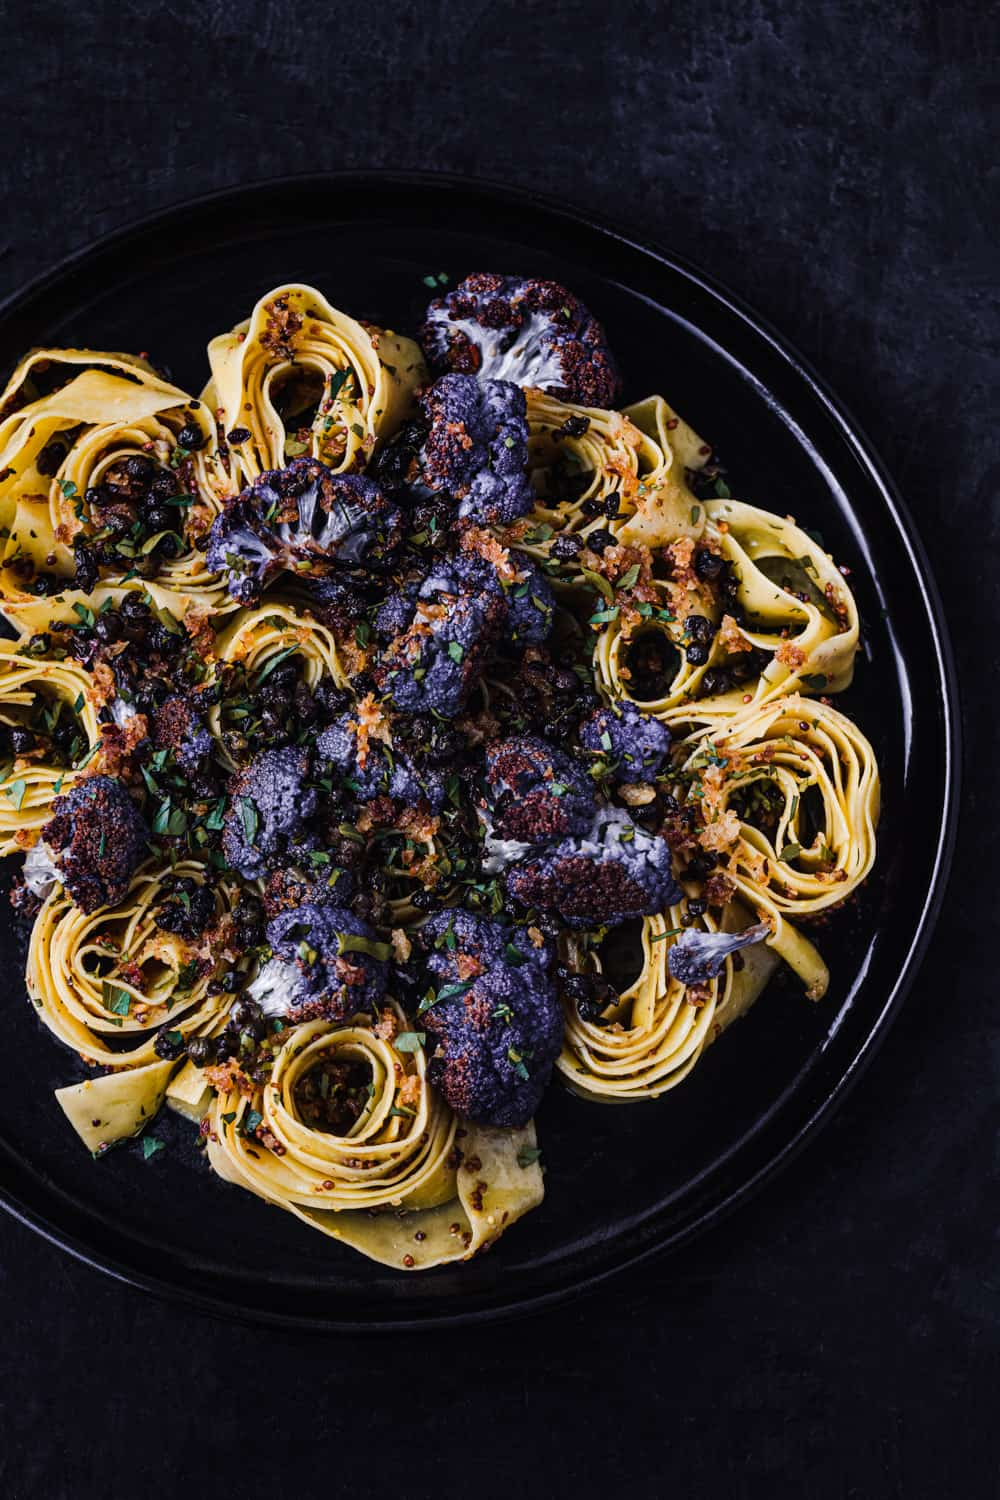 Garlicky Pasta with Cauliflower, Capers Breadcrumbs and a Mustard Brown Butter Pan Sauce, overhead shot on a dark background